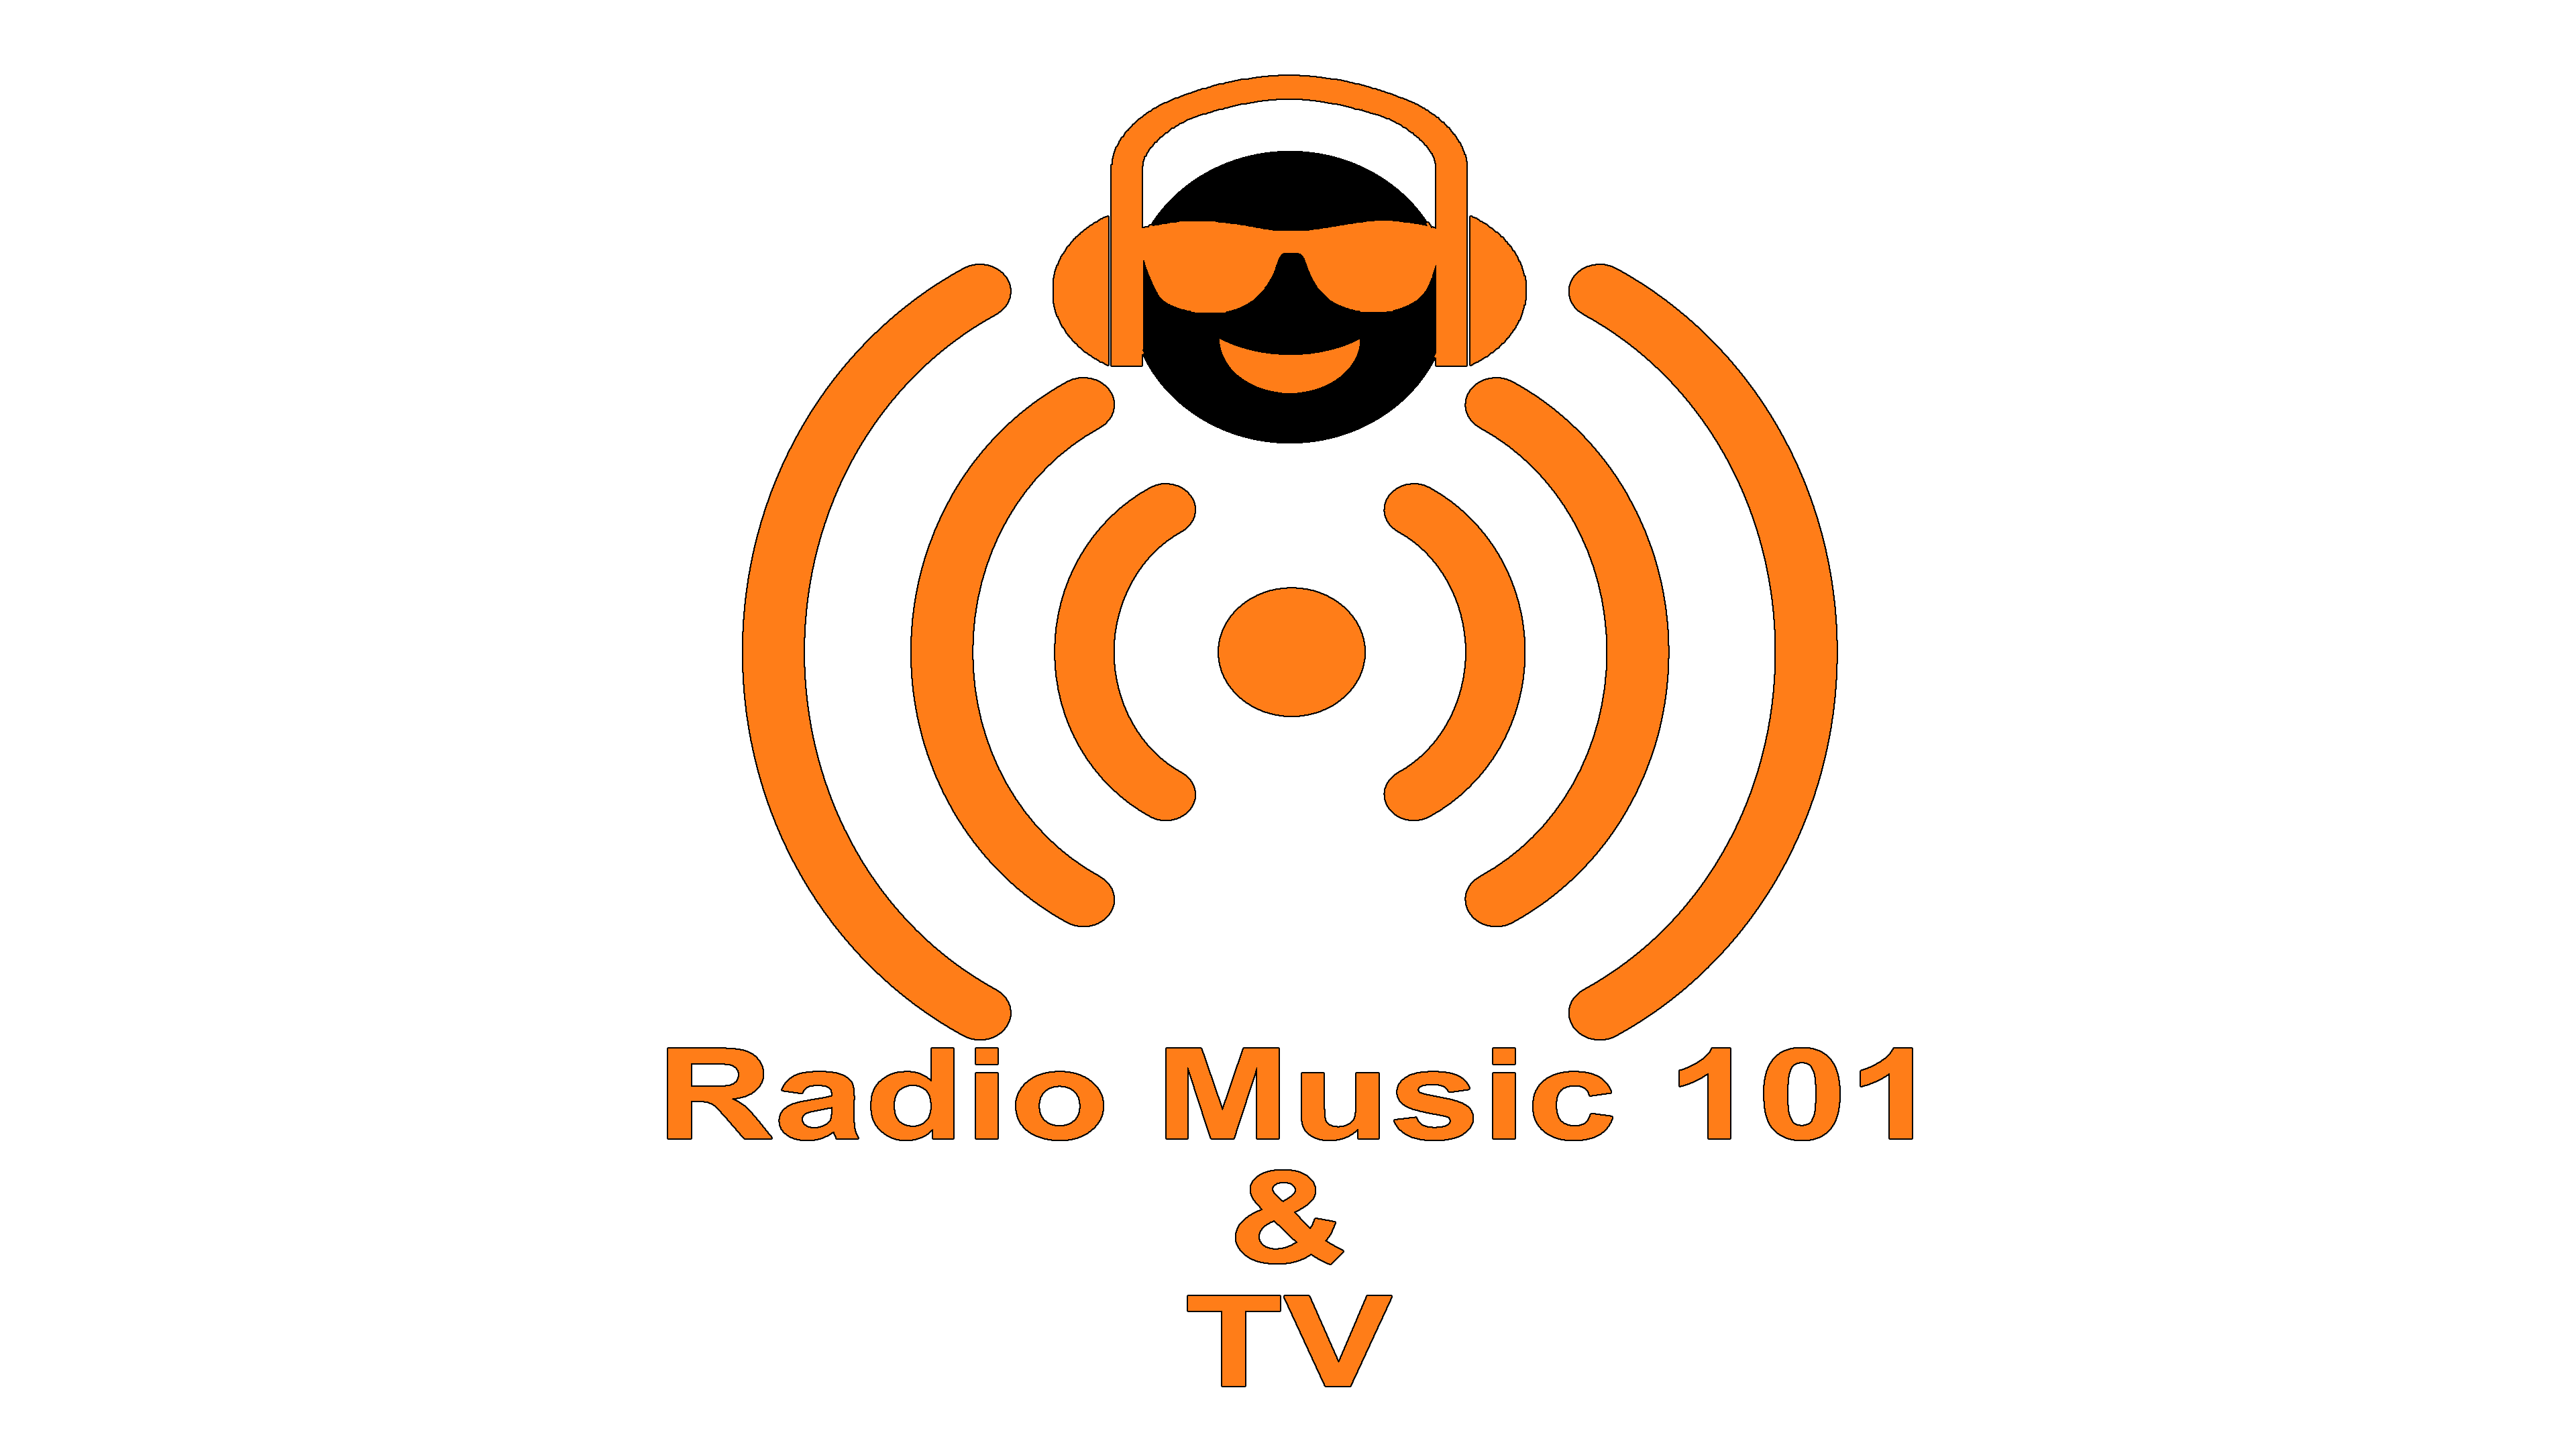 Radio Music 101 & TV